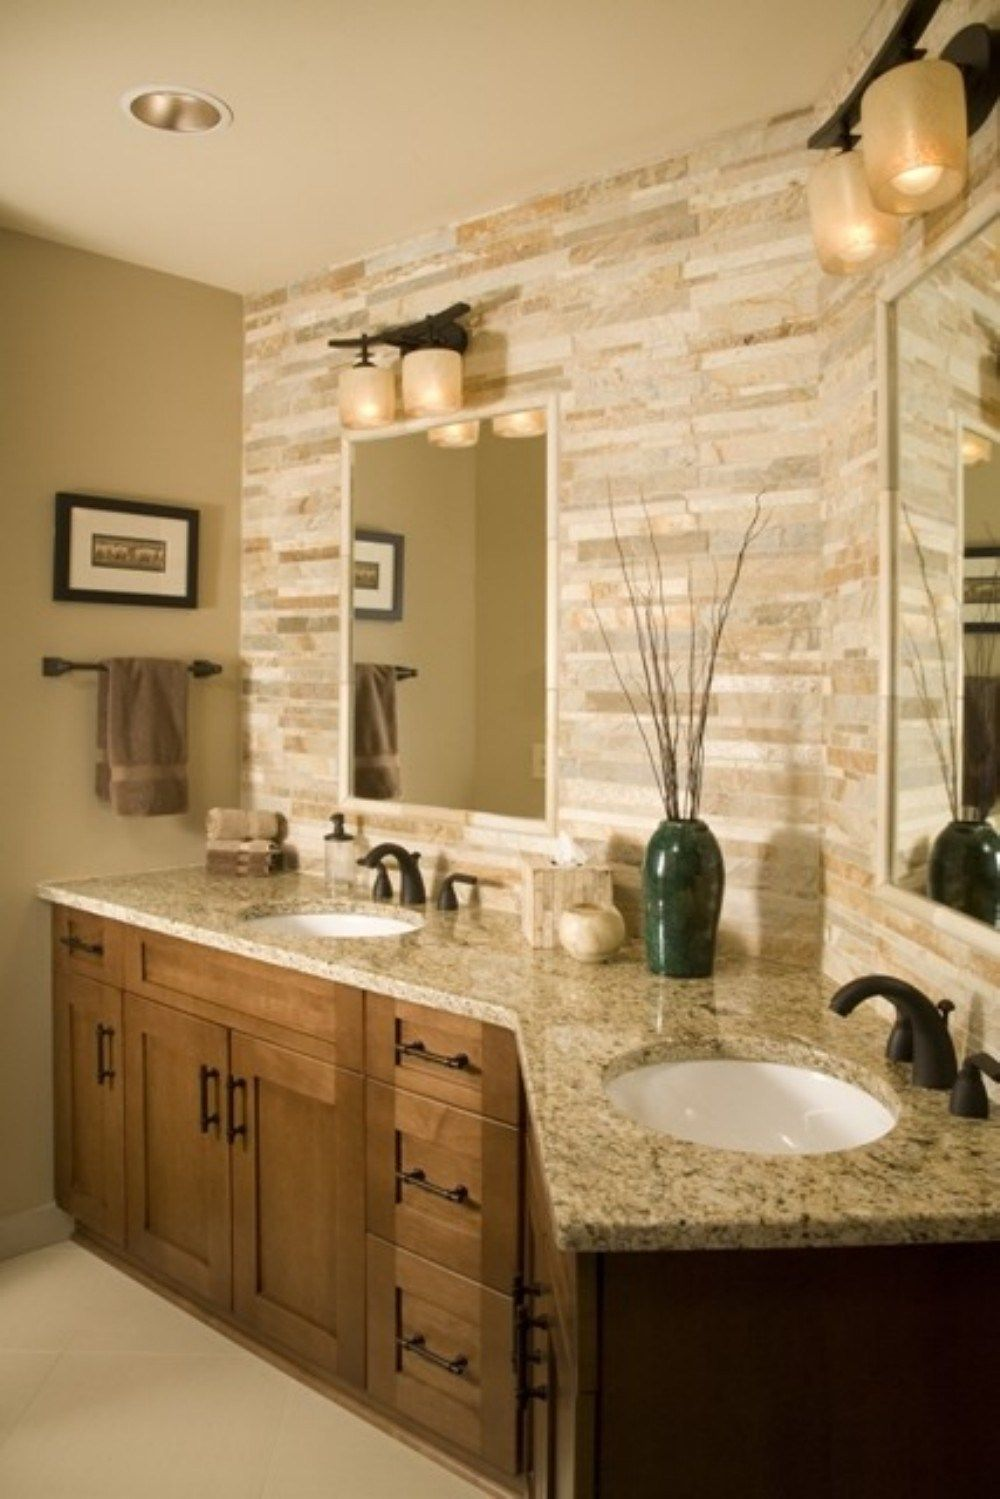 Love the tile on wall behind the sinks. Goes so well with the ...